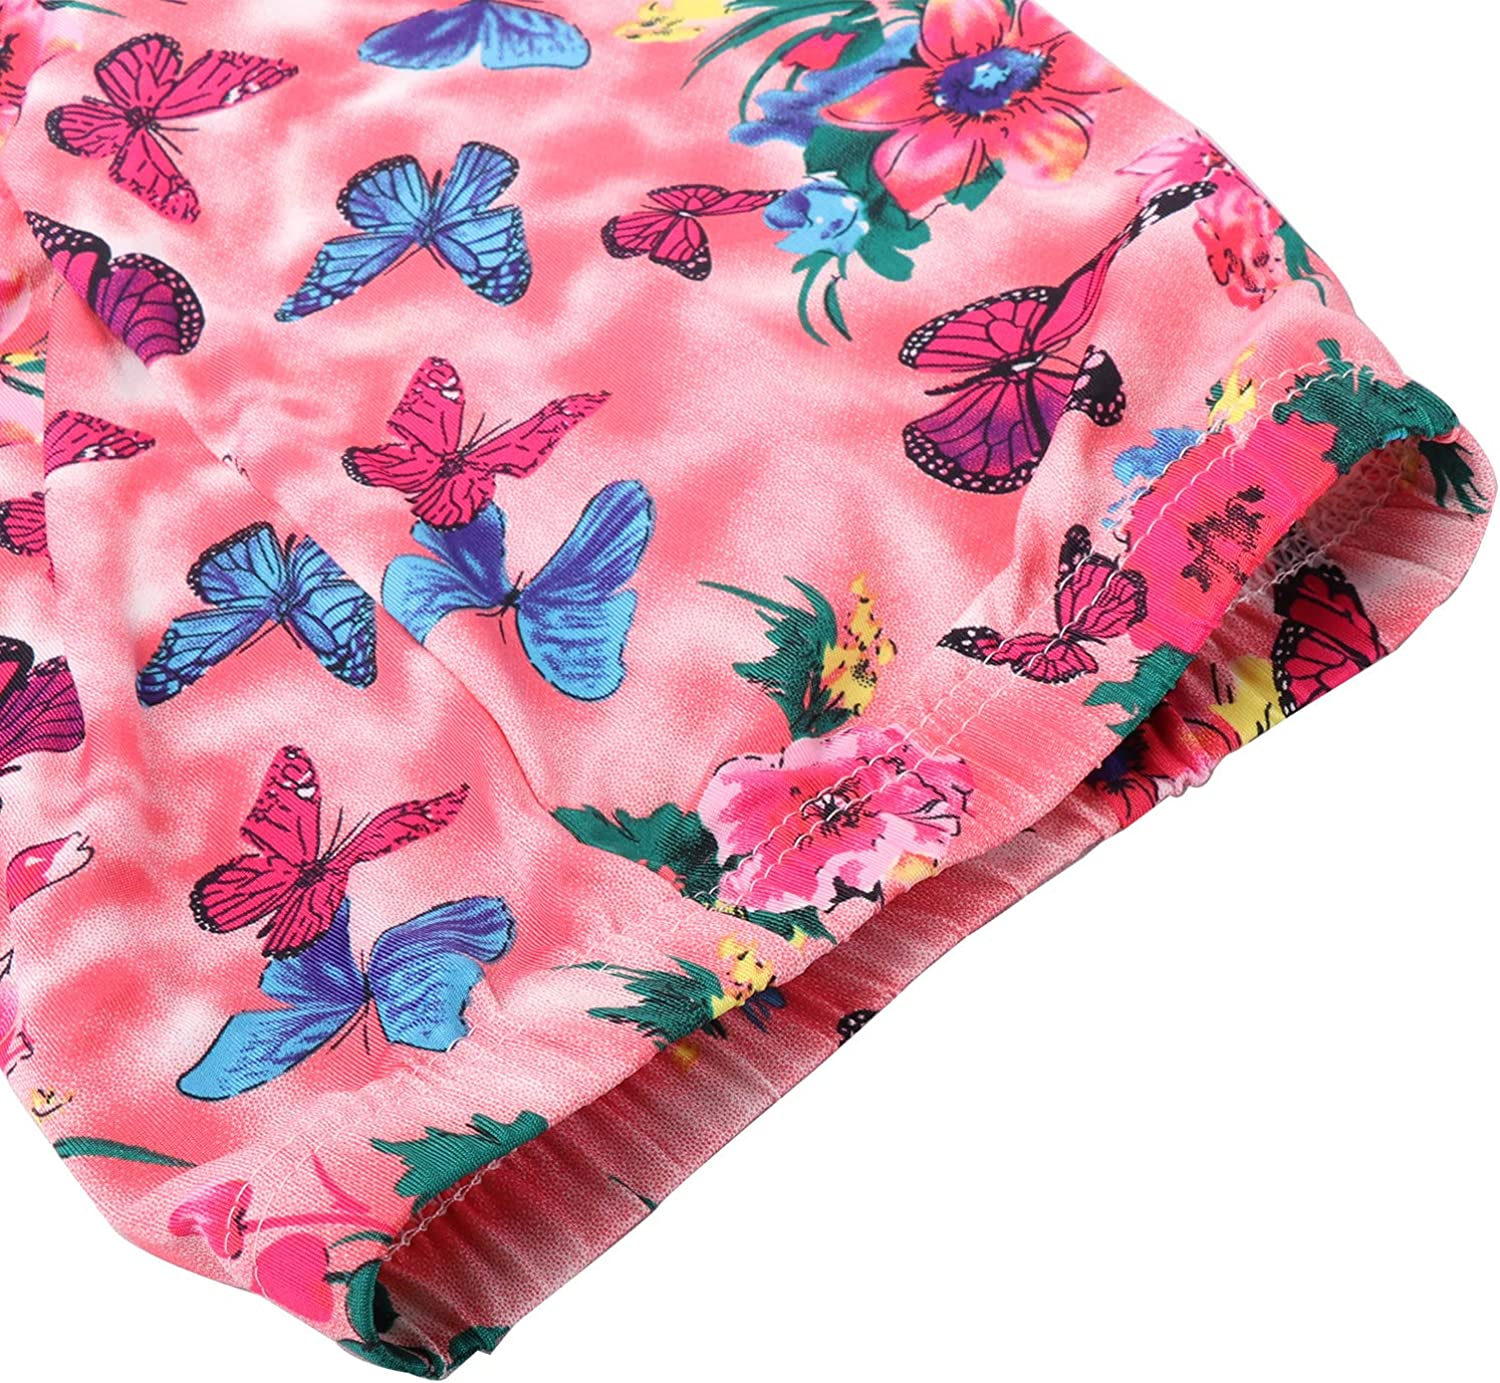 Biofieay Girls Stretch Pants Floral Pattern Leggings Full Length Tights Kids Trousers Age 2-13